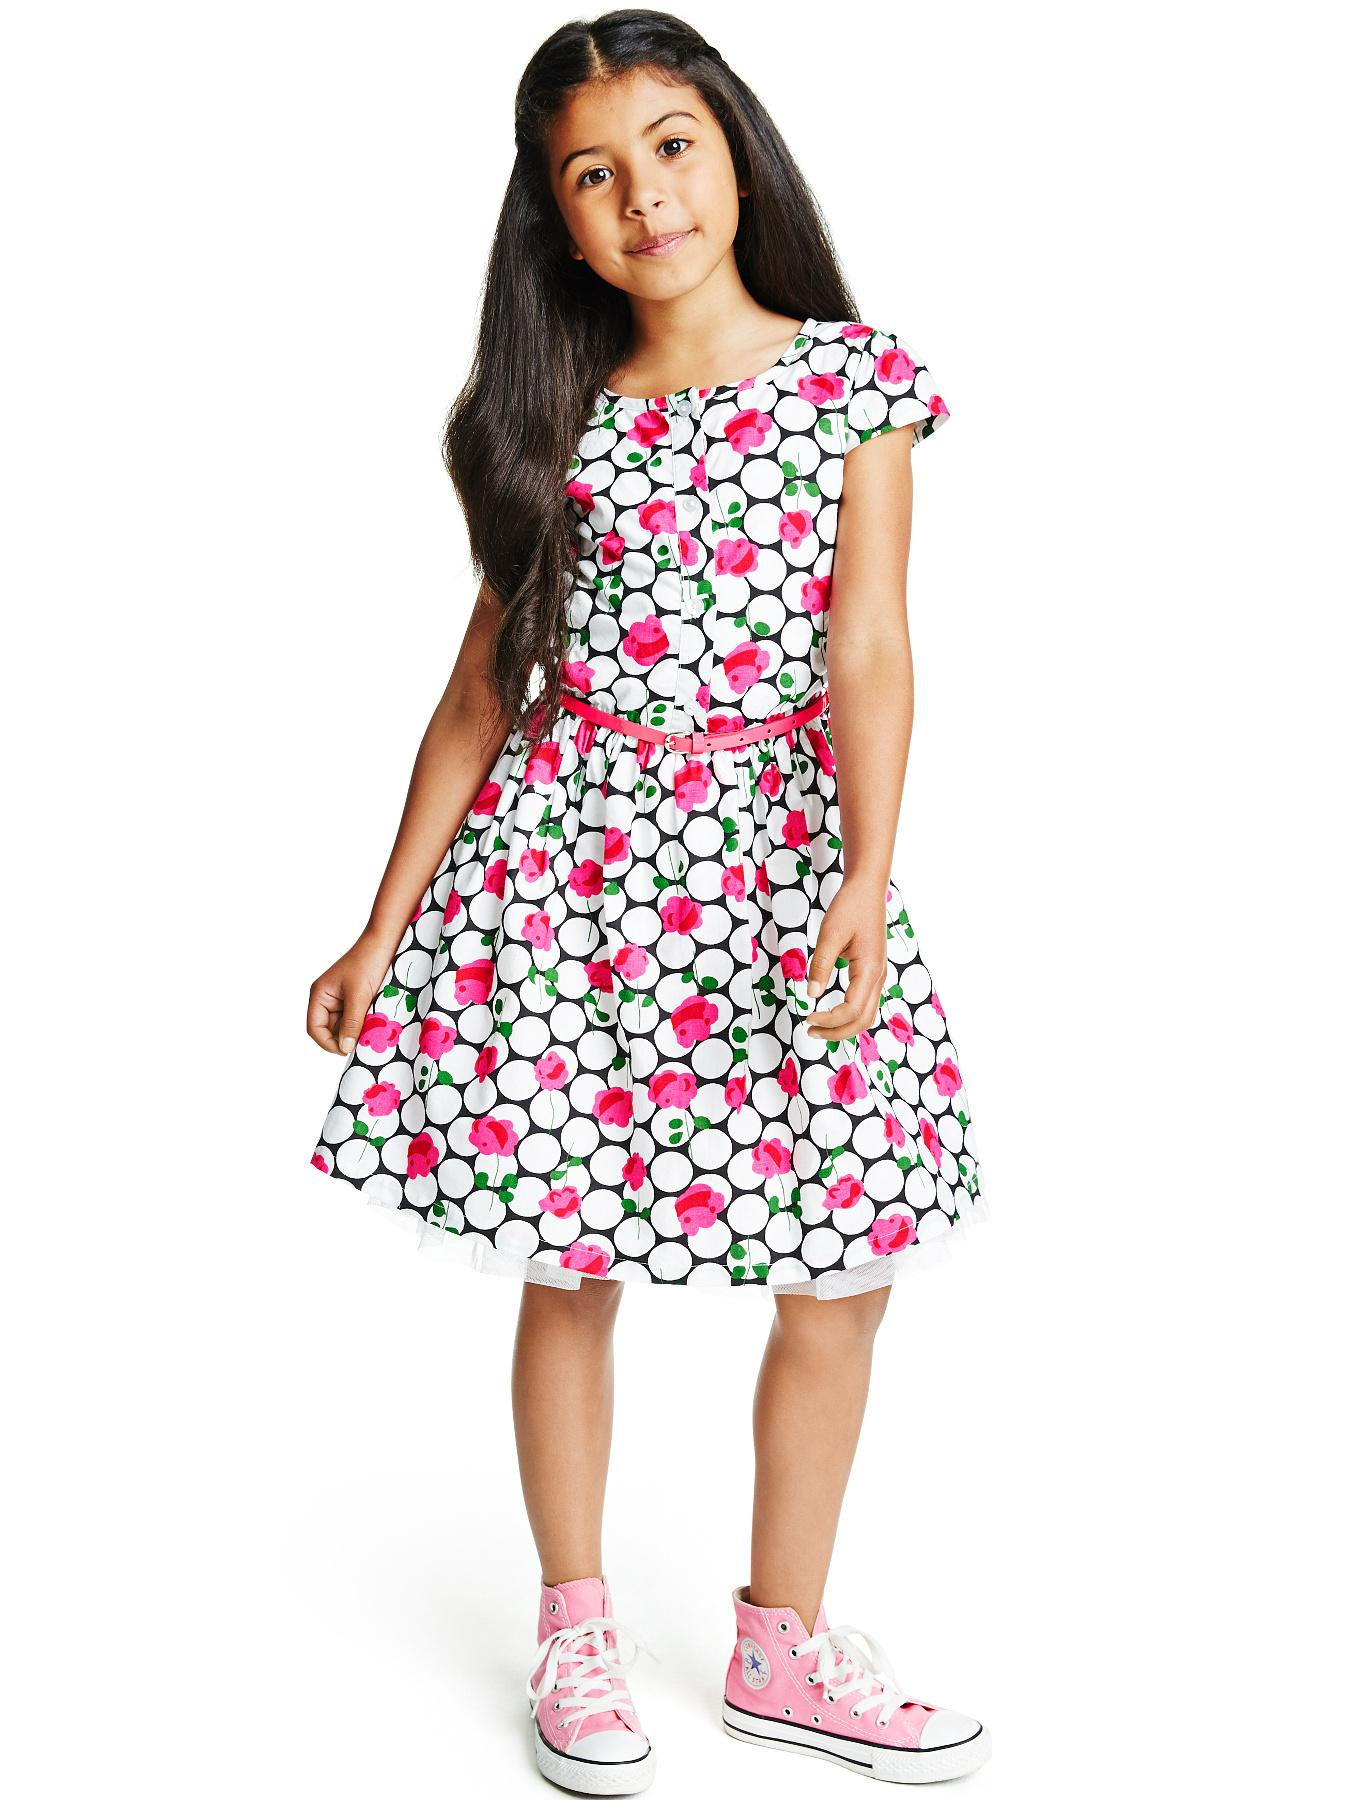 Mar 25, · The best sites for online clothes shopping in India. Below is a list of few great online clothing stores. Possibly you could fine the best deals here. What are the good sites for online clothes shopping in India? Sites like amazon and snapdeal have the best price .